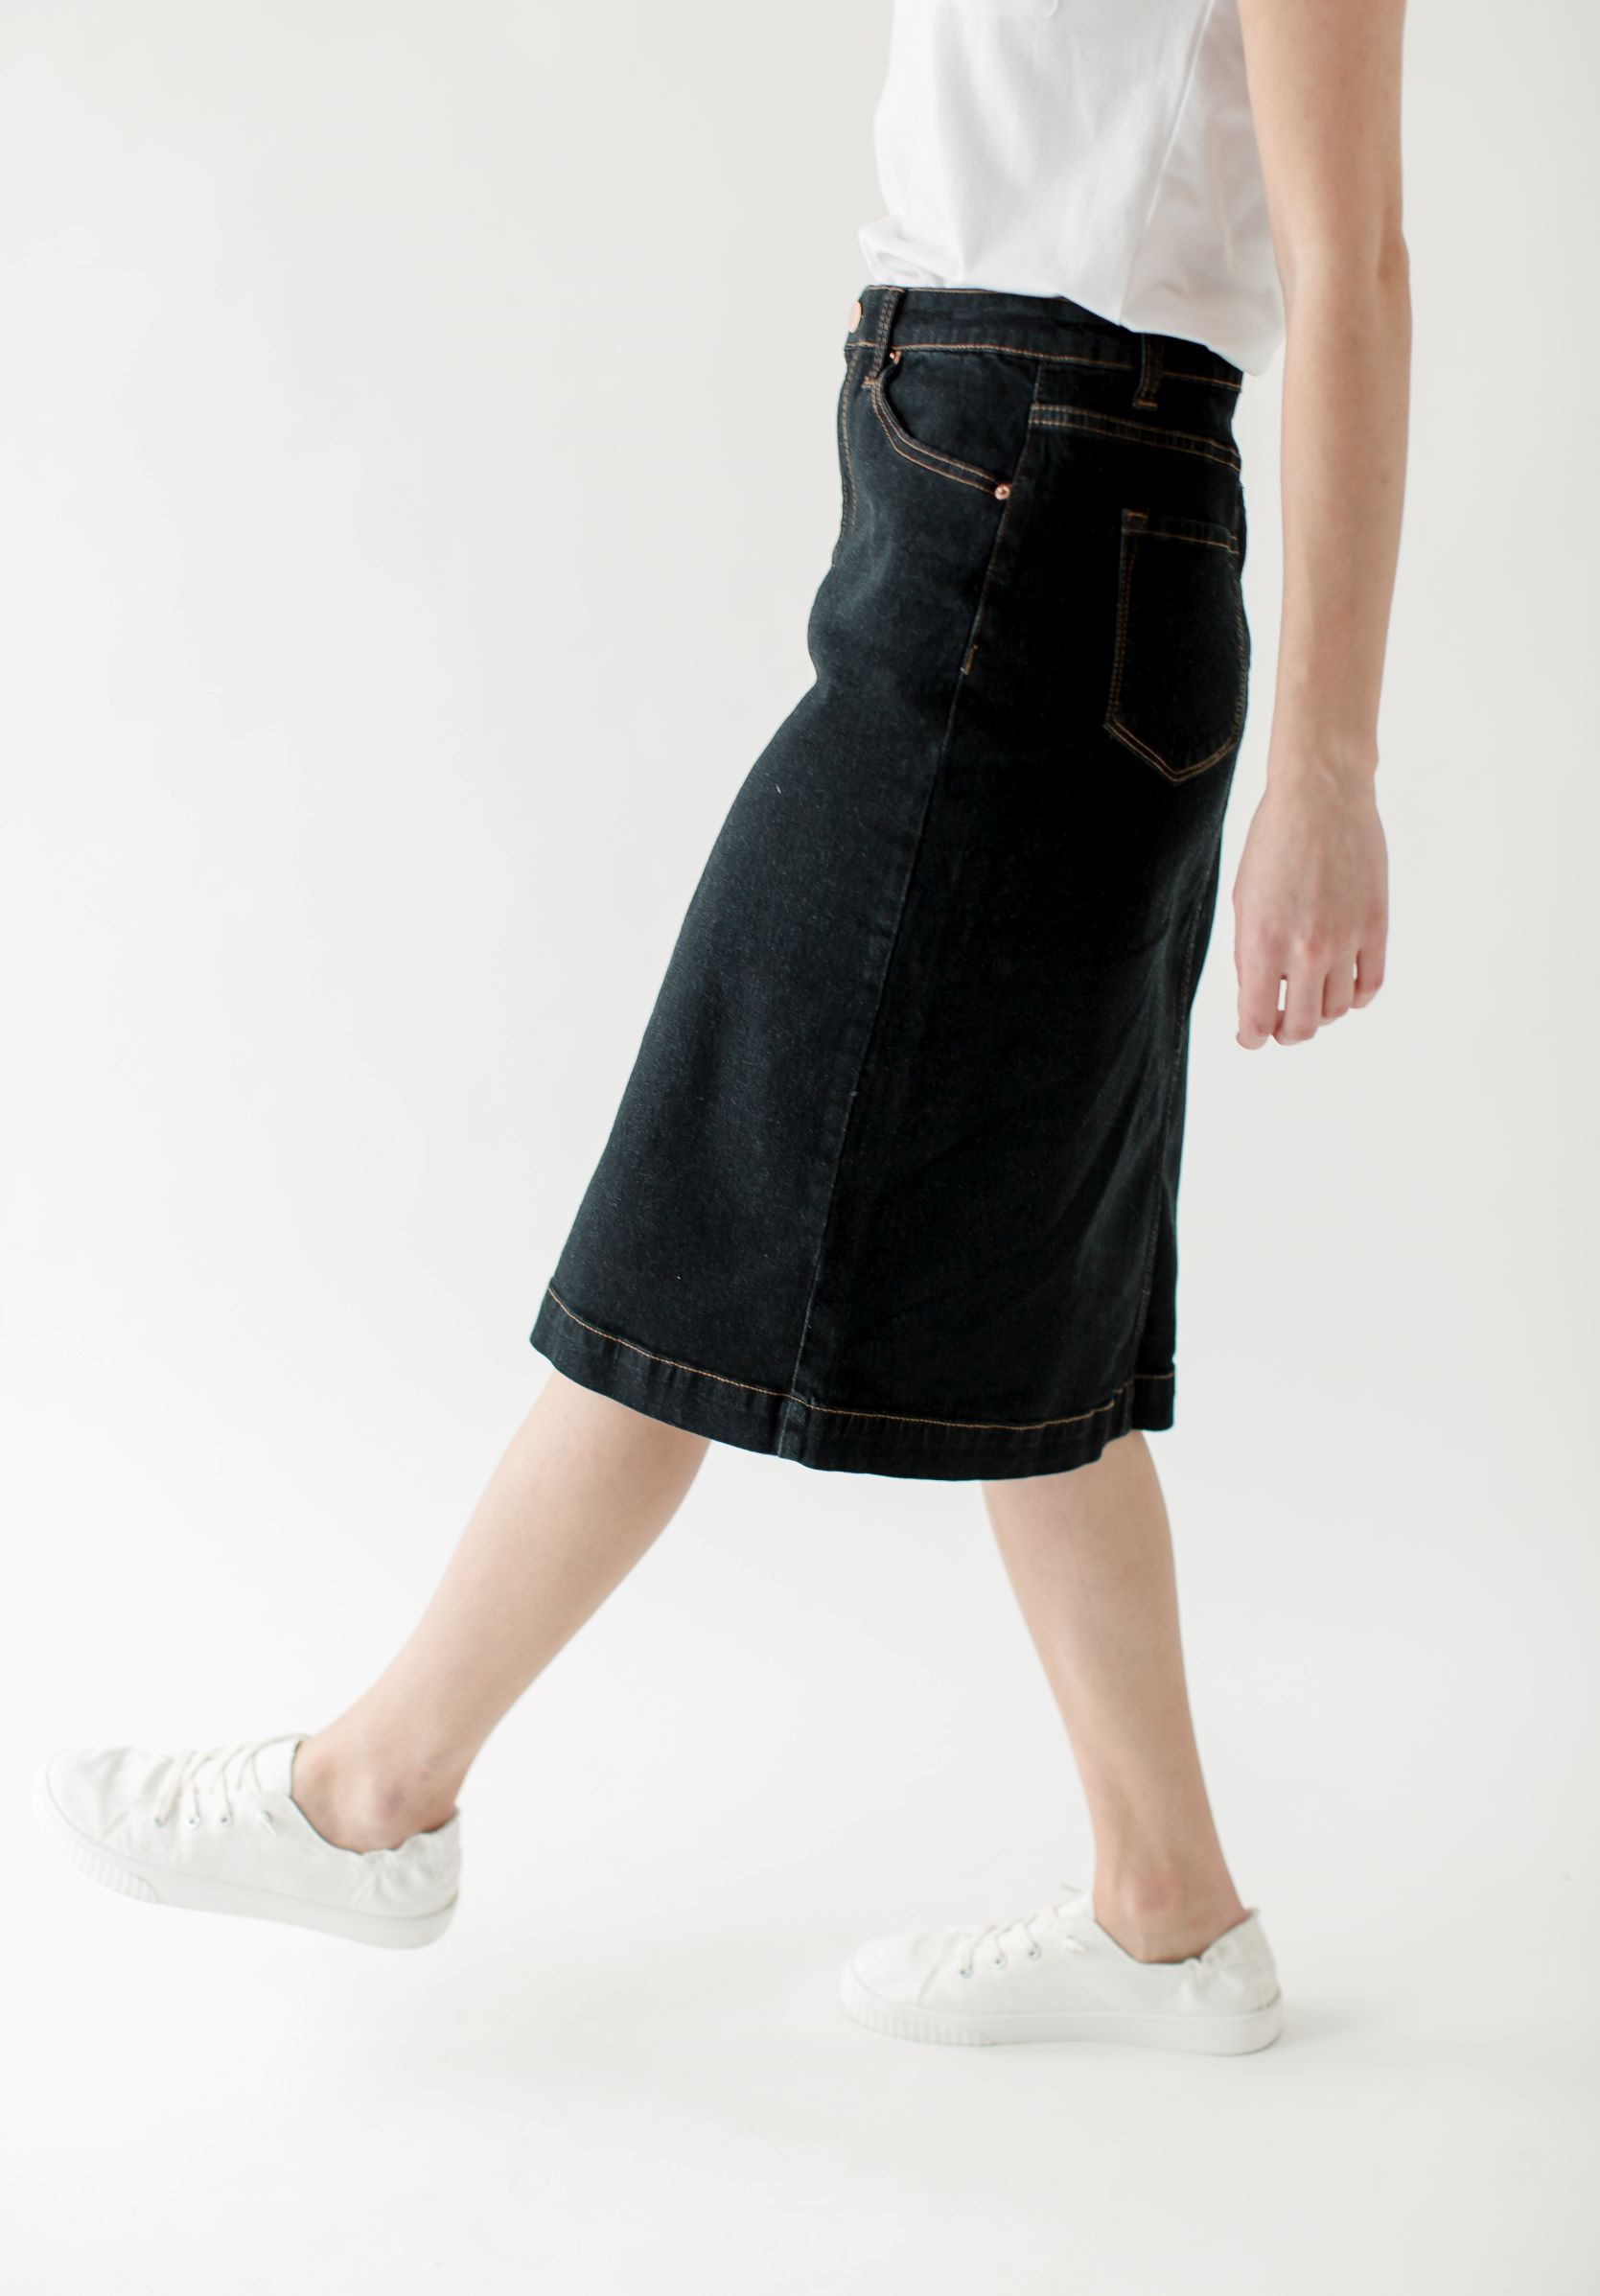 The 'Jia' is a dark wash denim skirt featuring a classic cut with simple lines! Feminine with a modern touch, this skirt pairs easily with a simple sweater and sneakers or ankle boots for life on the go. Exclusively designed by us for you! Also available in ankle length. 97% Cotton 3% Spandex Machine wash cold Do not bleach Hang to Dry Iron low heat Do not dry clean Have questions about fit?Call us! We try everything on, so we know how our clothes fit and we're happy to assist you. Customer Serv